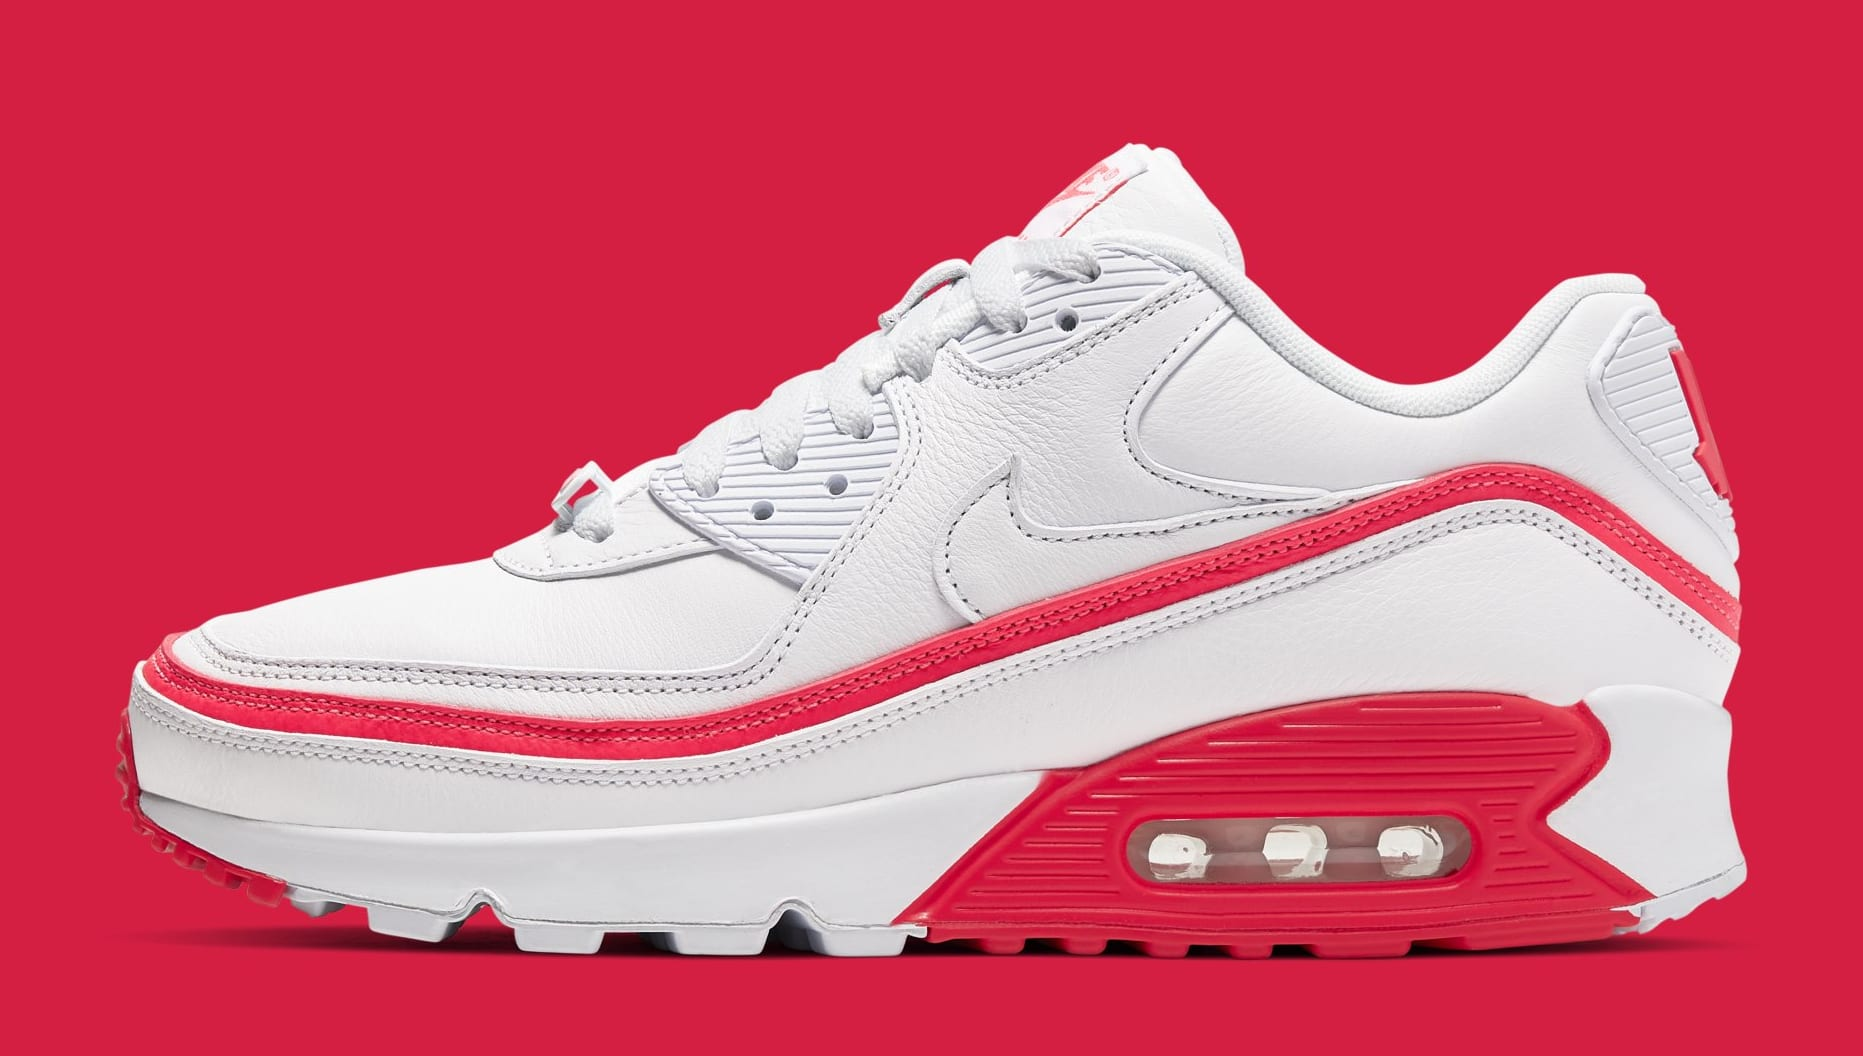 undefeated-nike-air-max-90-white-solar-red-cj7197-103-lateral